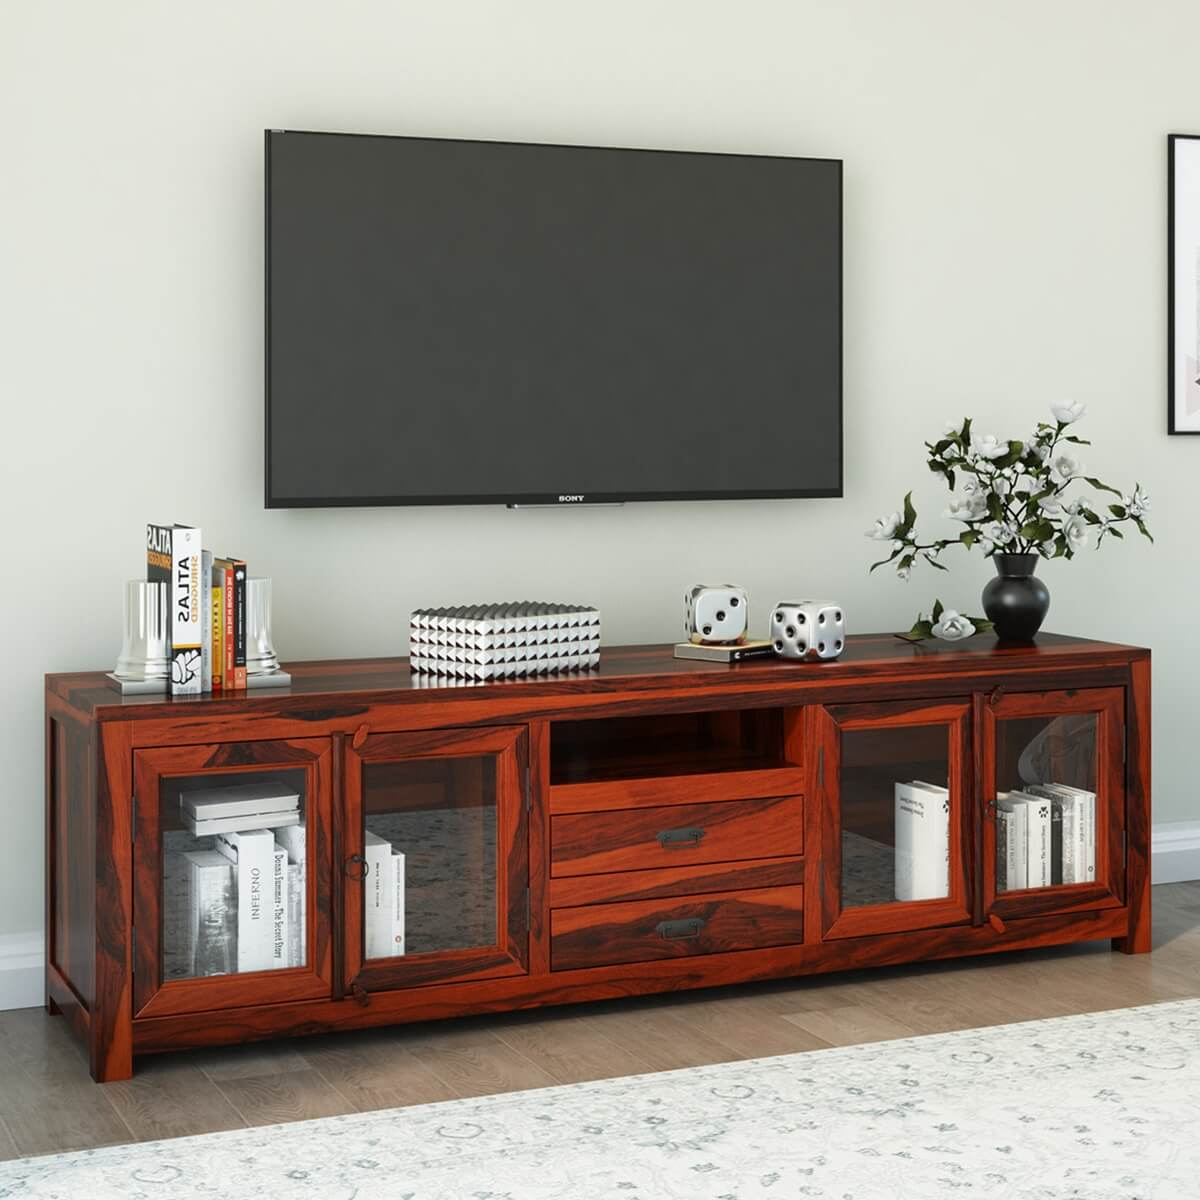 Large rustic solid wood tv media stand console with glass